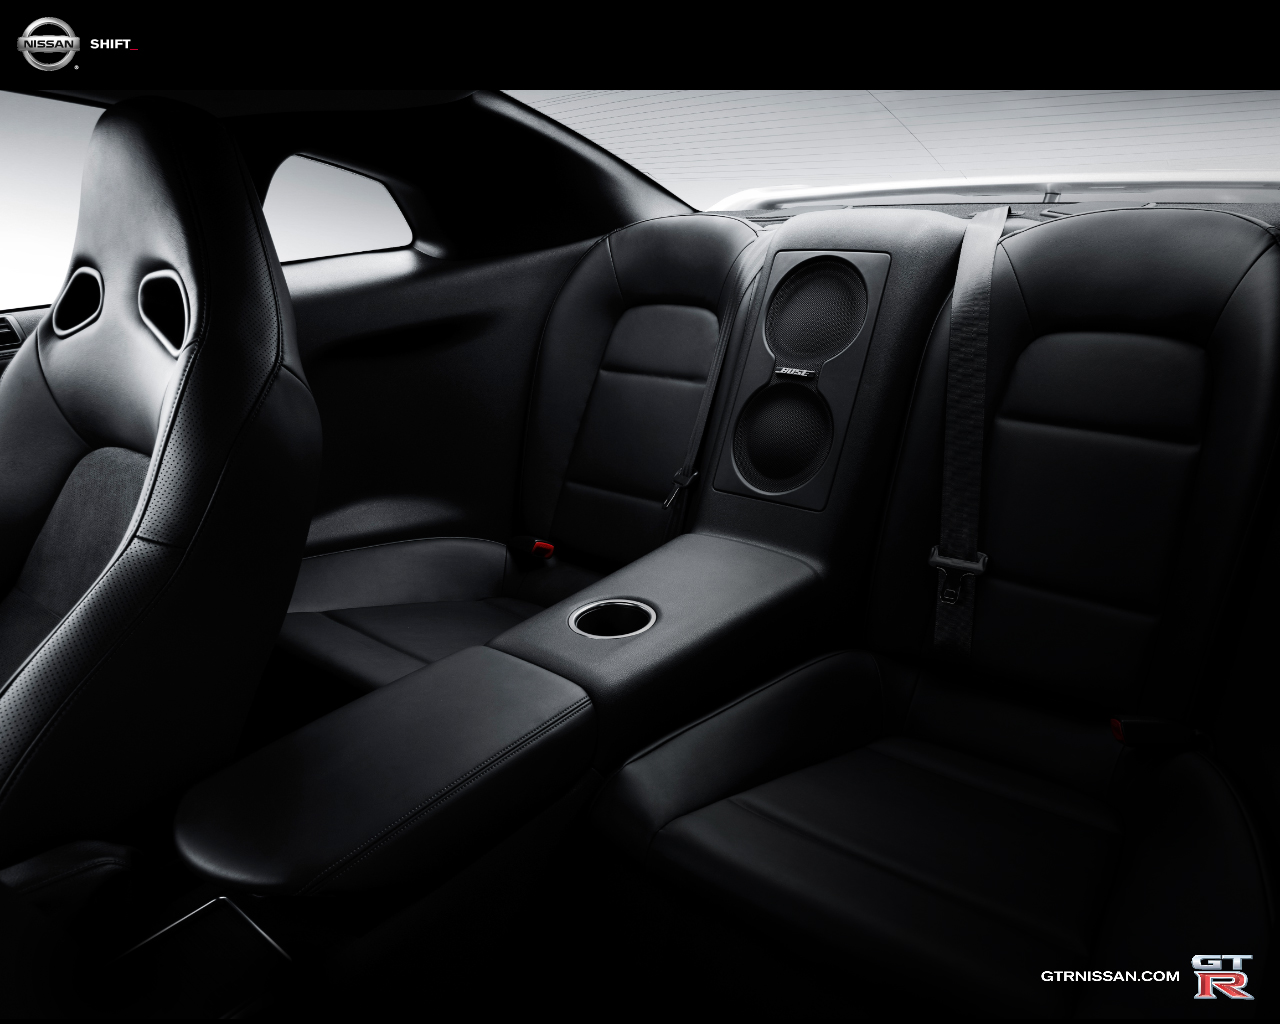 gtr interior back seat new autocars news July 2010